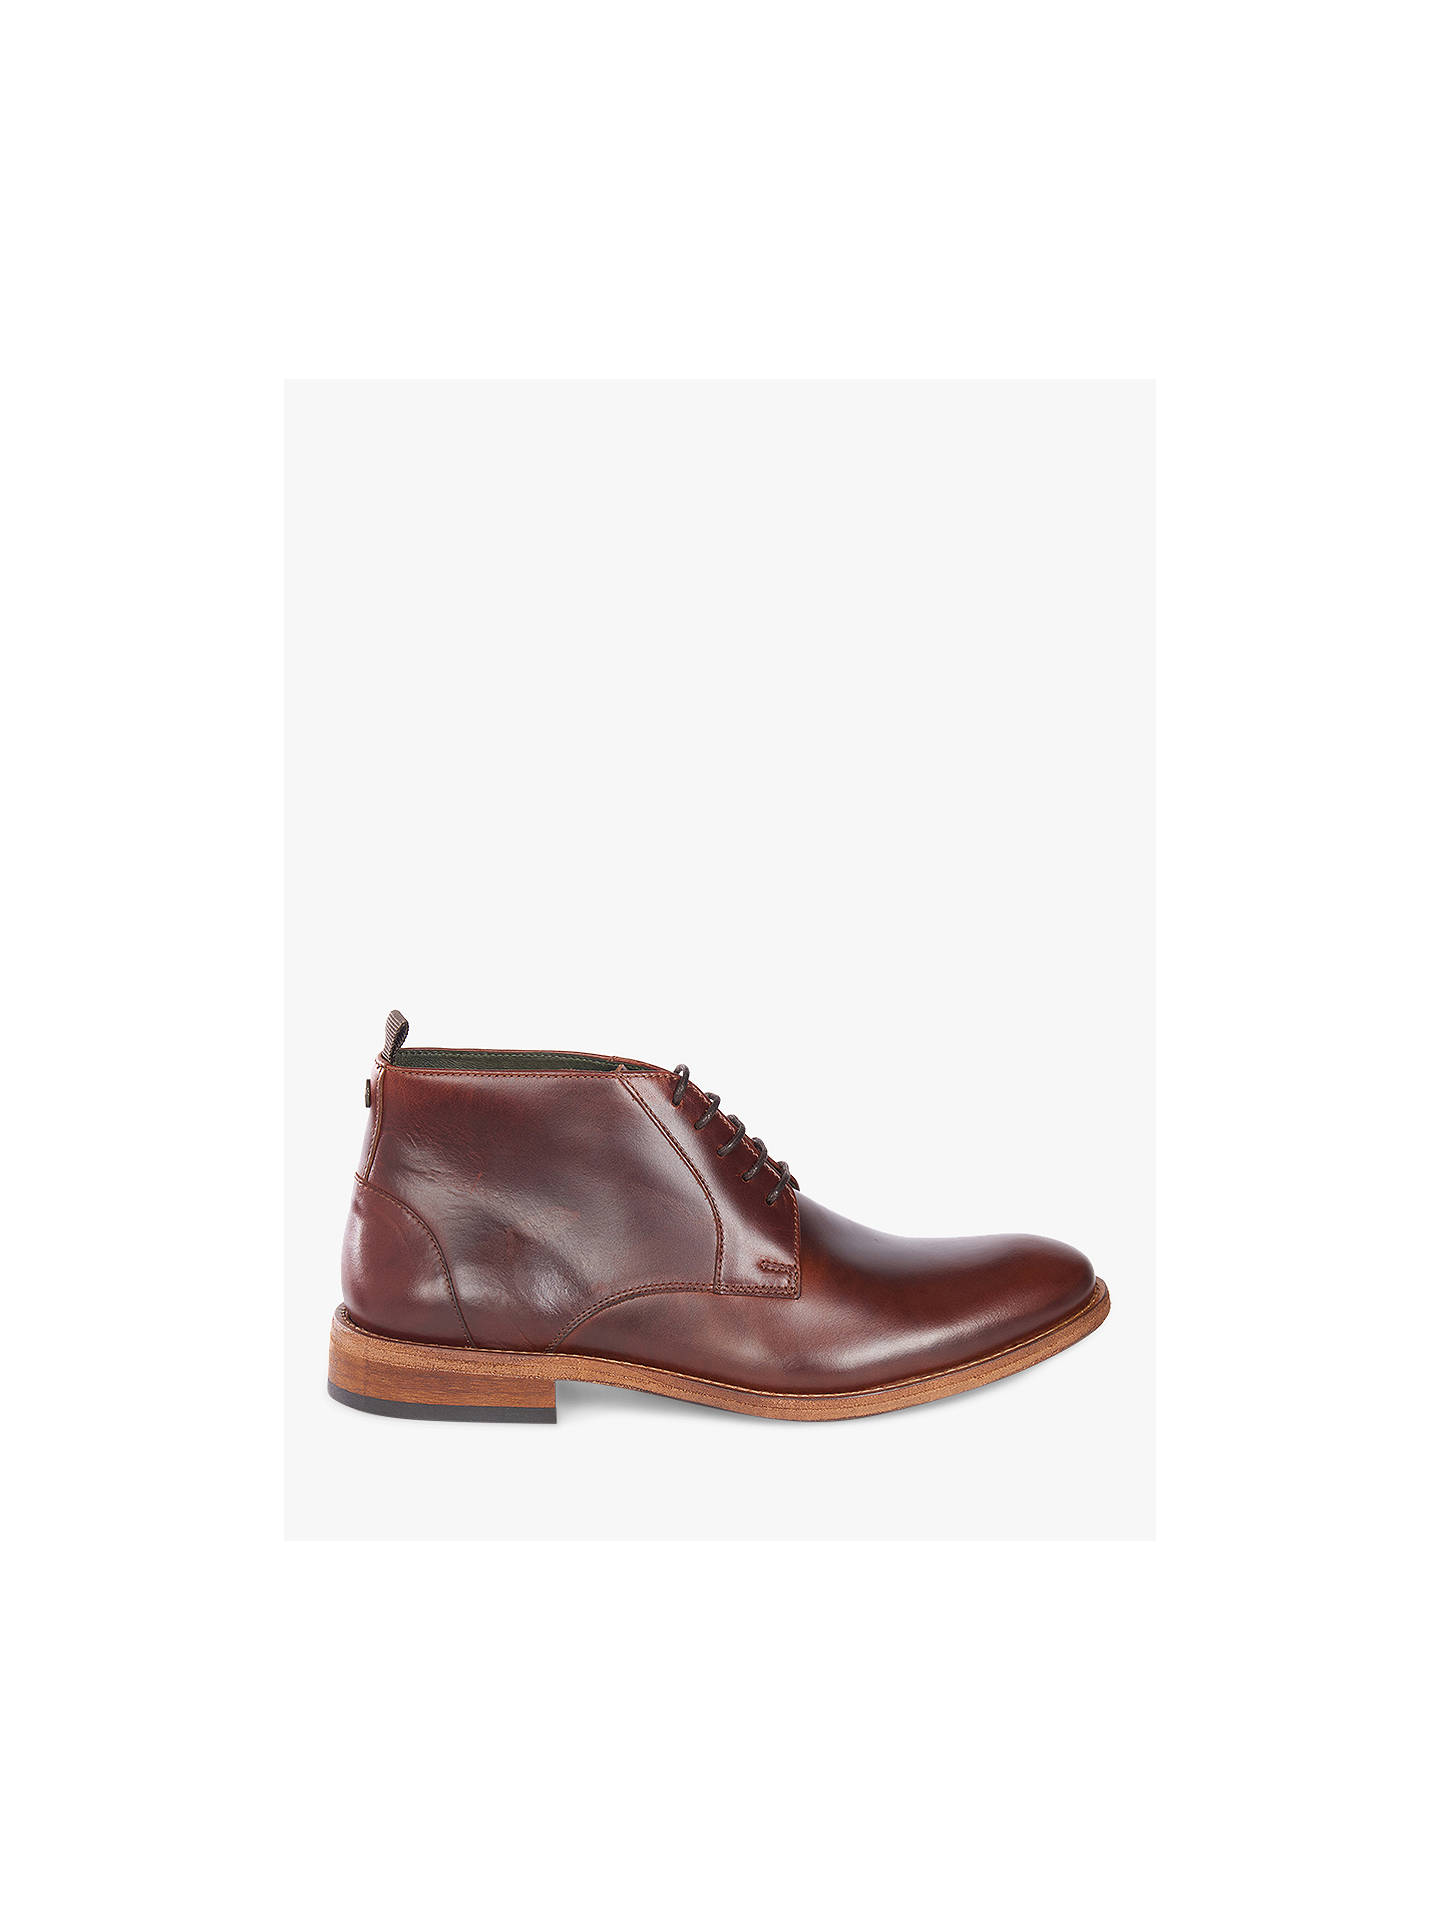 BuyBarbour Benwell Chukka Boots, Red, 7 Online at johnlewis.com